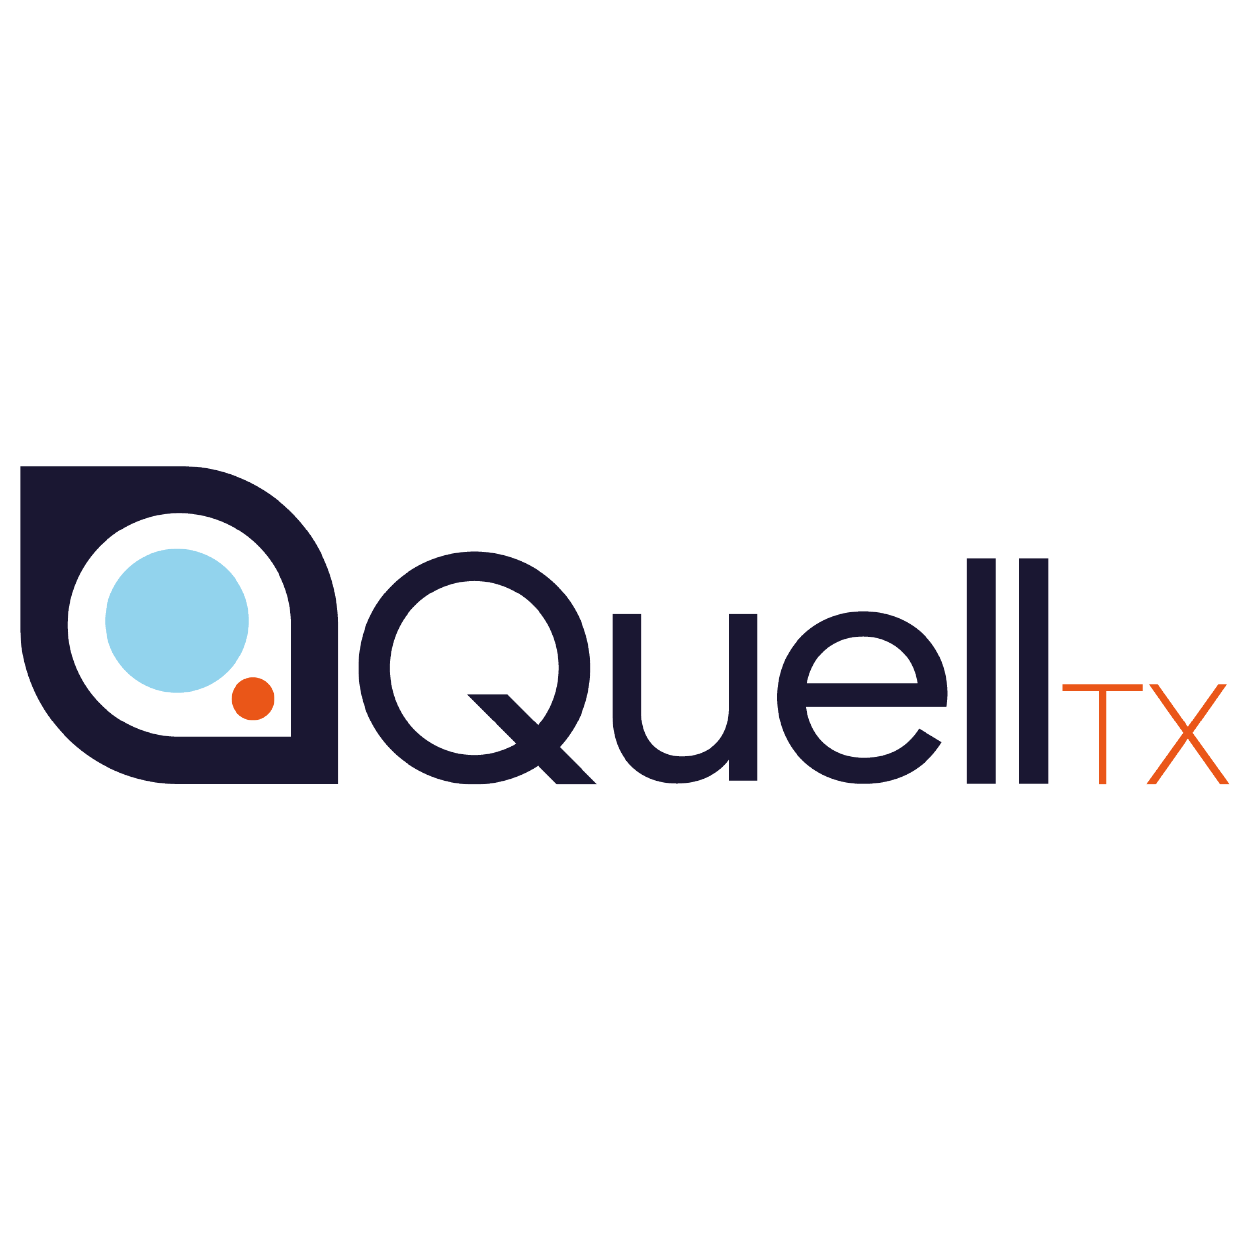 Quell Therapeutics